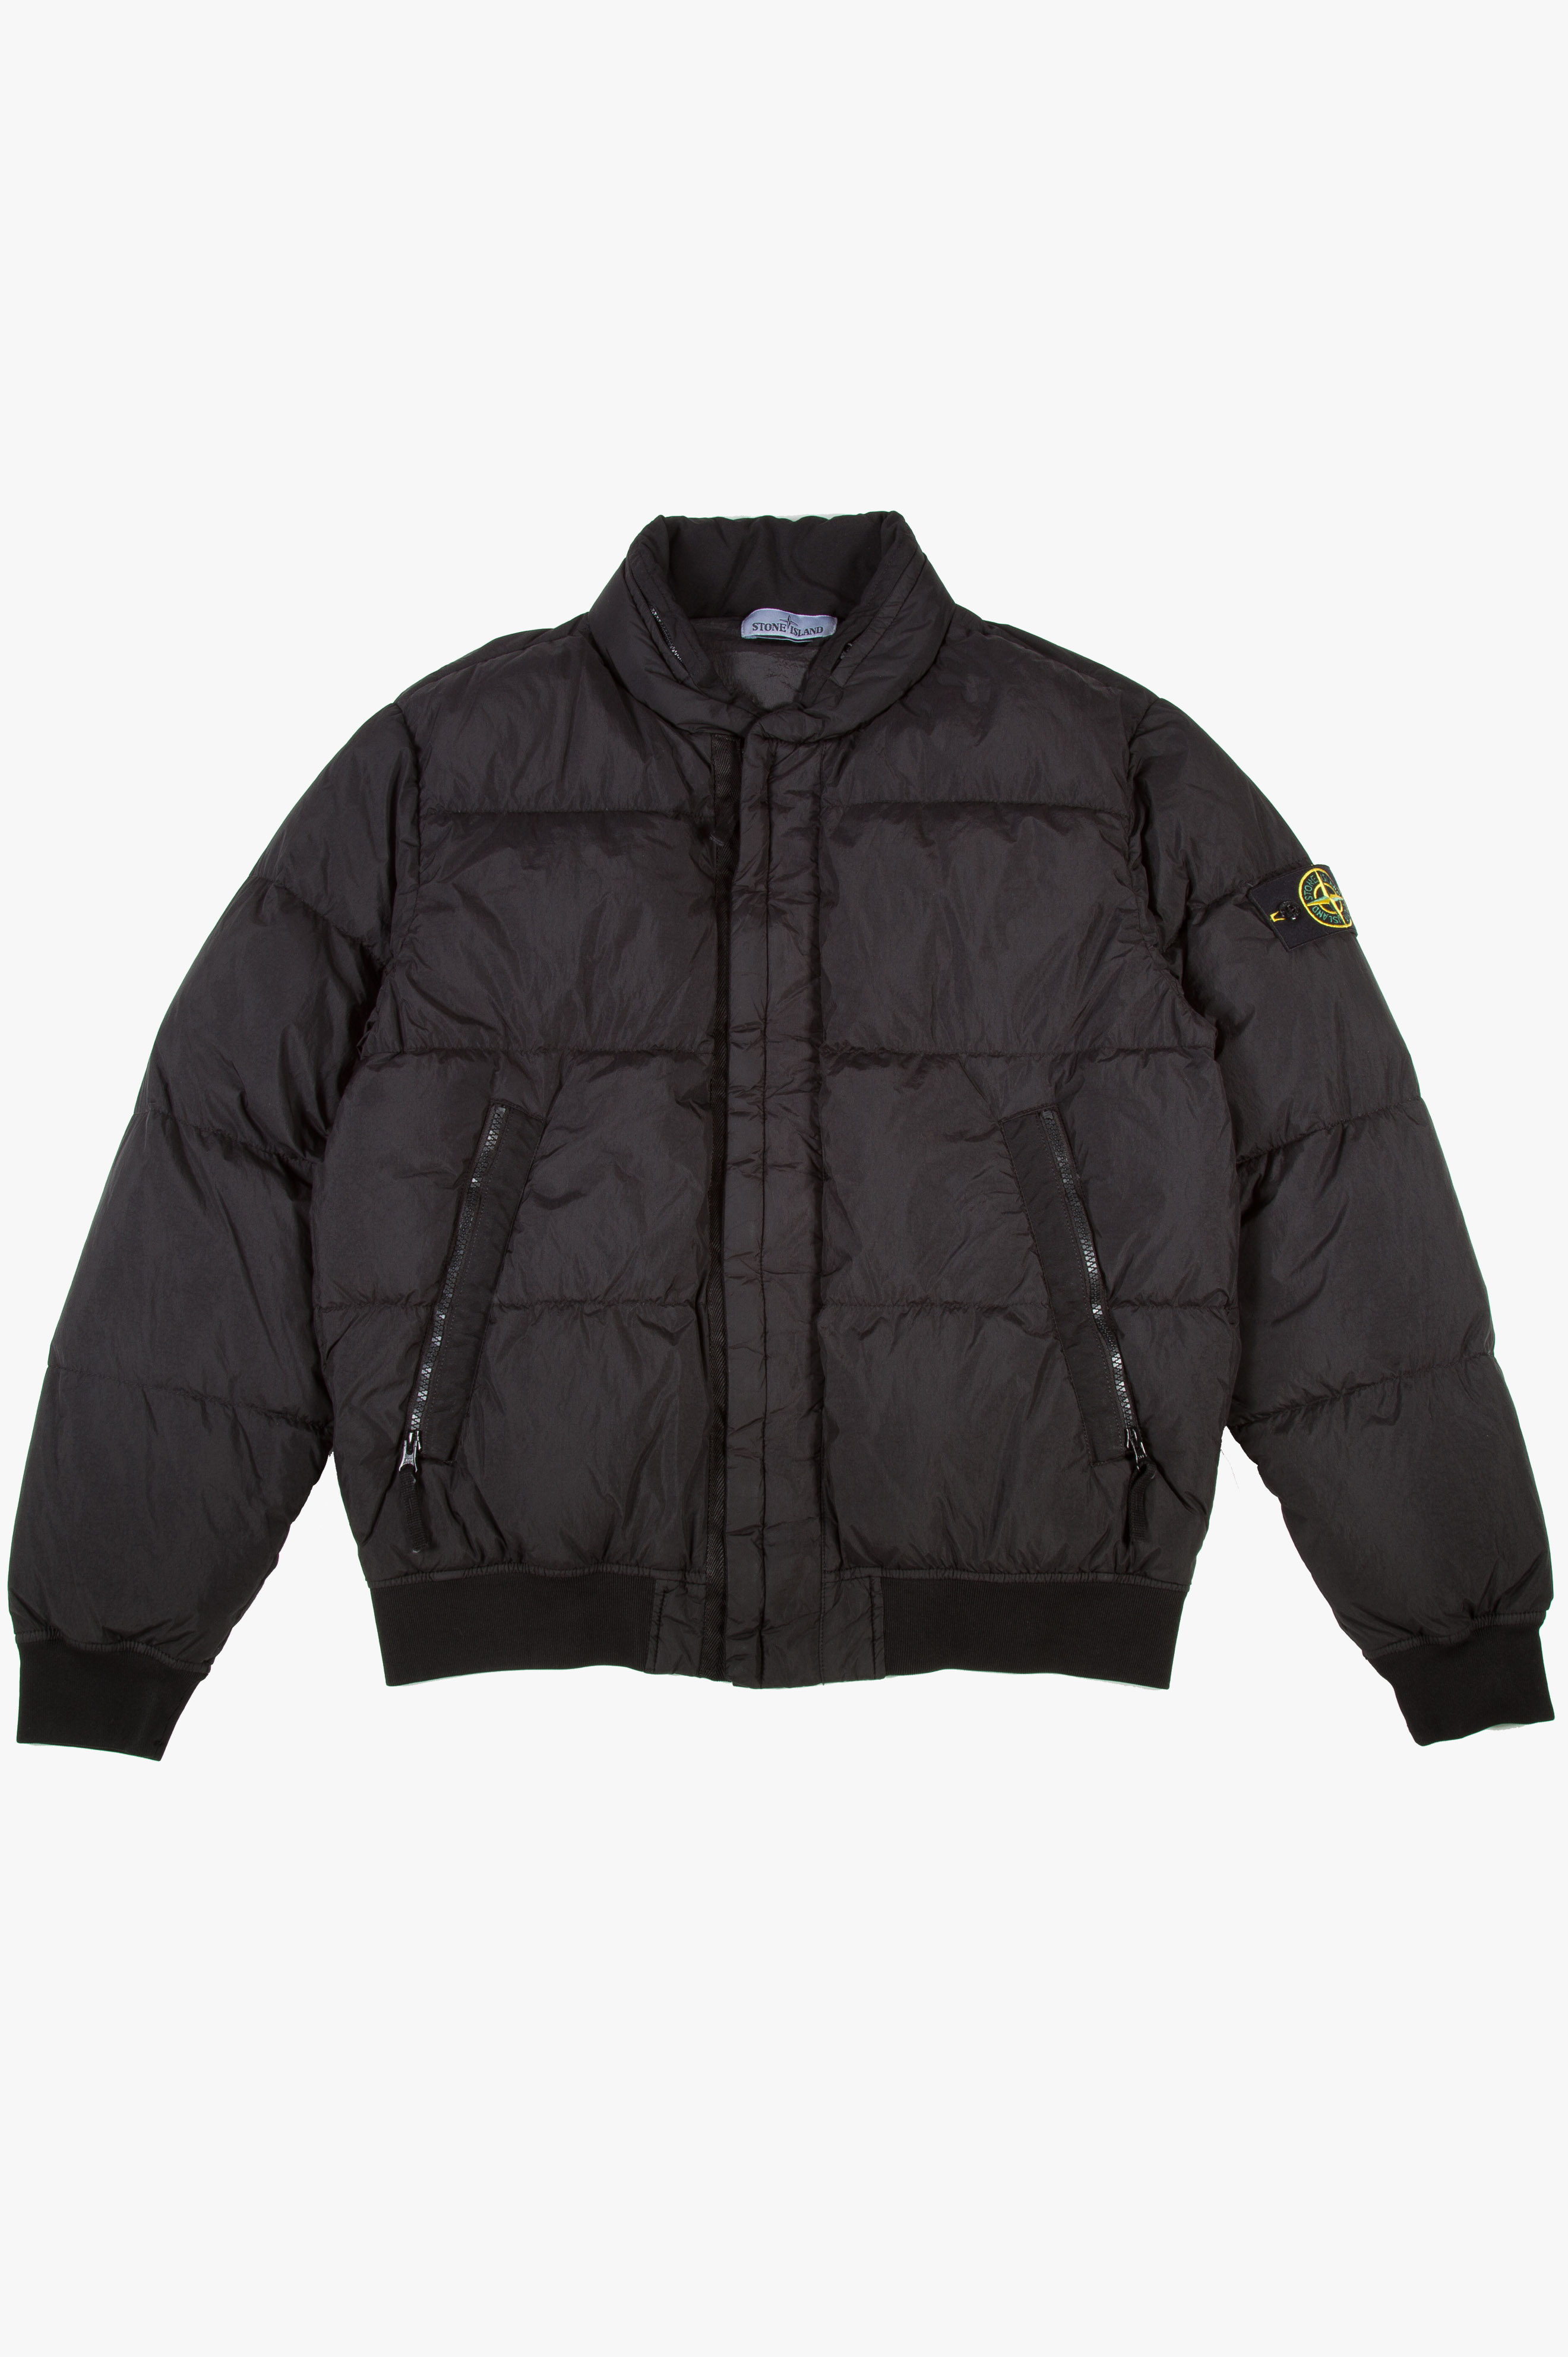 Garment Dyed Crinkle Reps NY Down Jacket Black